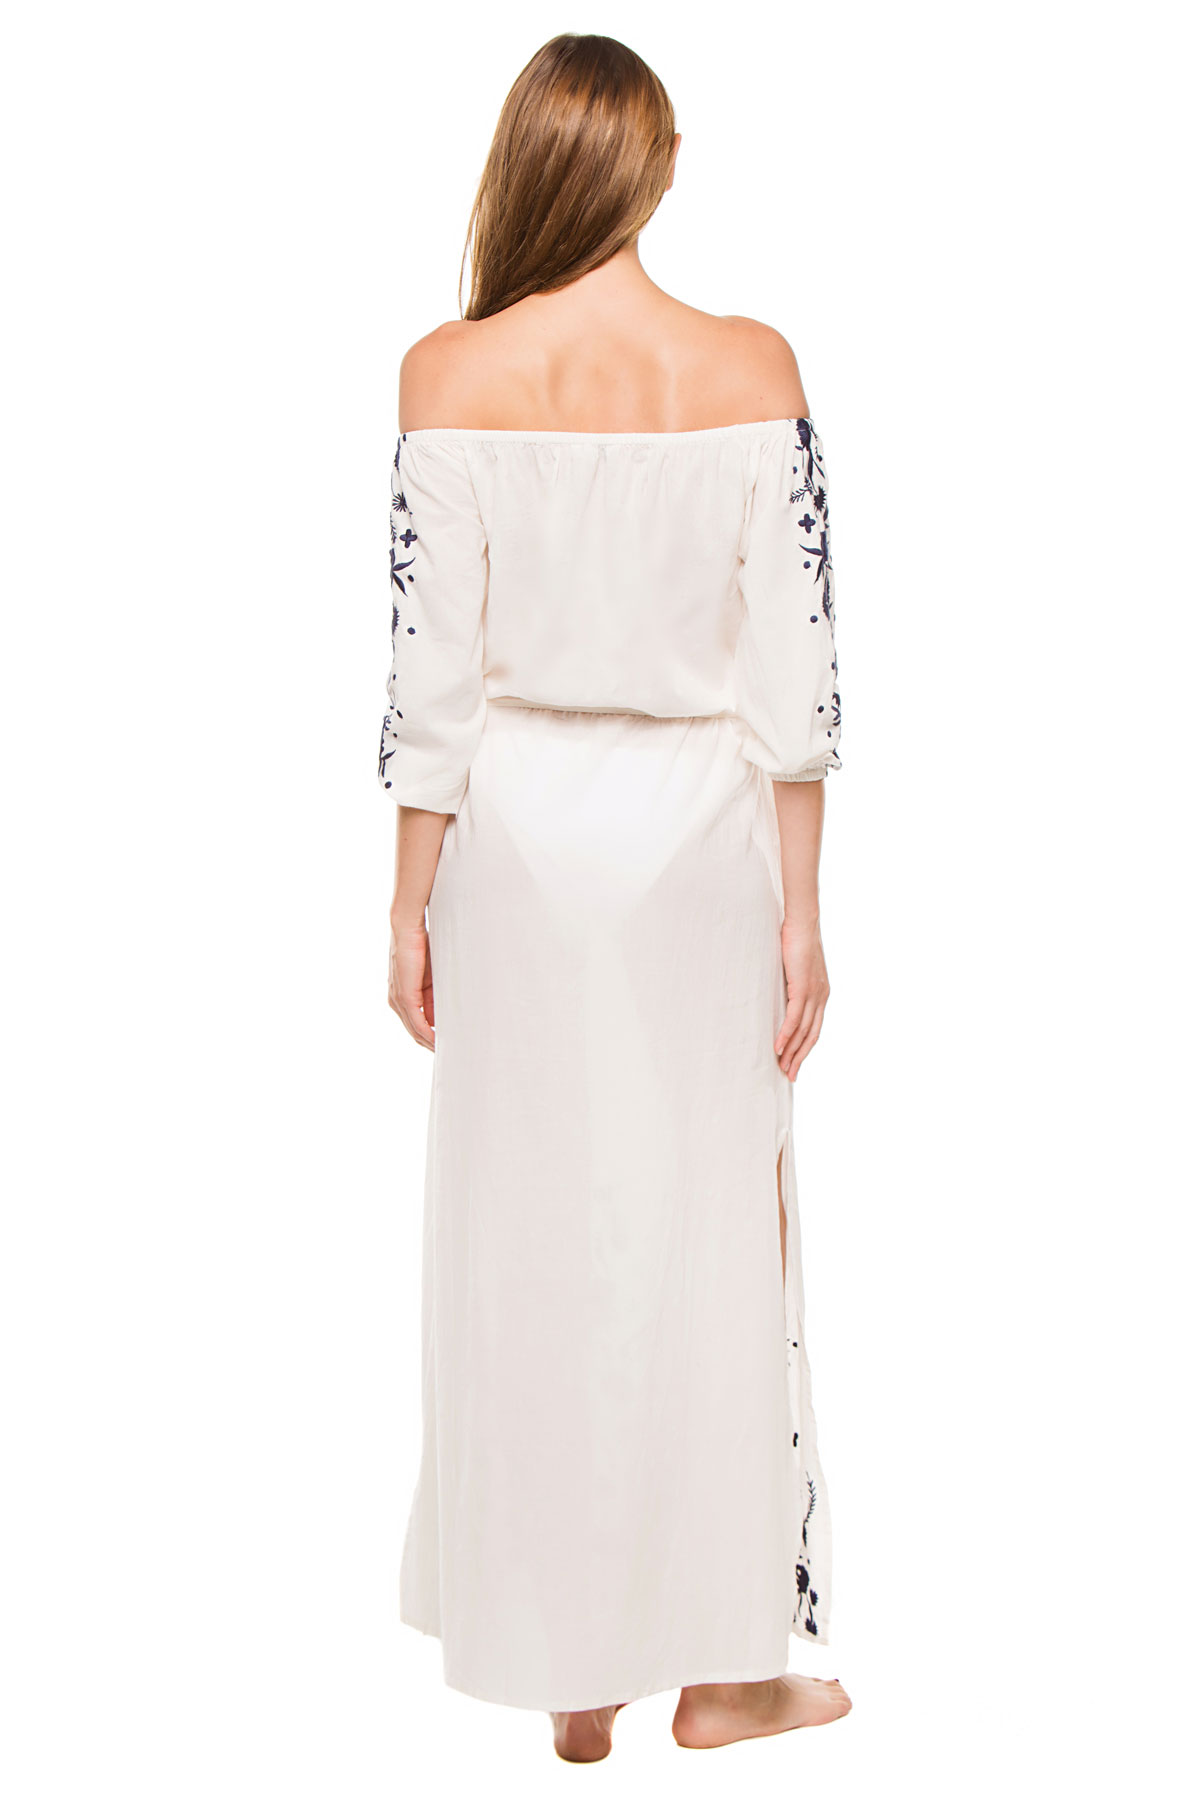 Grimaud Off The Shoulder Maxi Dress - White/Navy 2